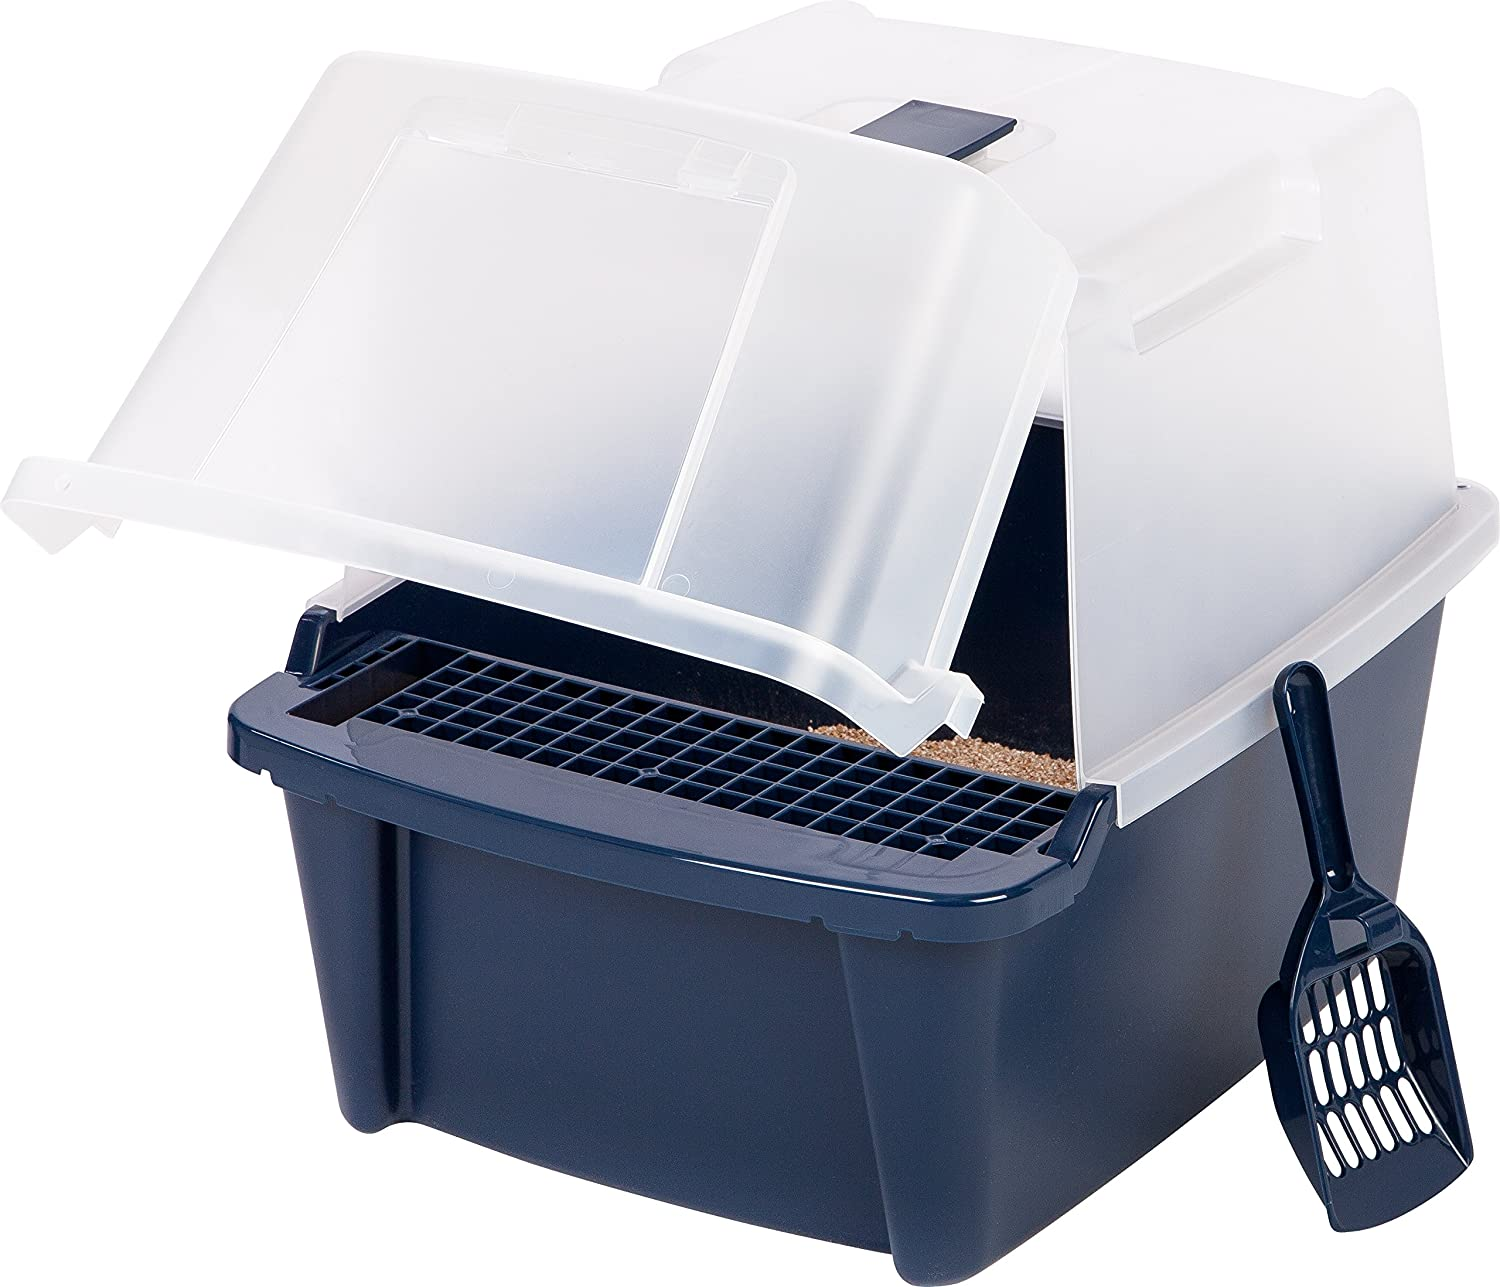 IRIS USA Large Split-Hood Litter Box with Scoop and Grate, Blue CLH-15S: Pet Supplies